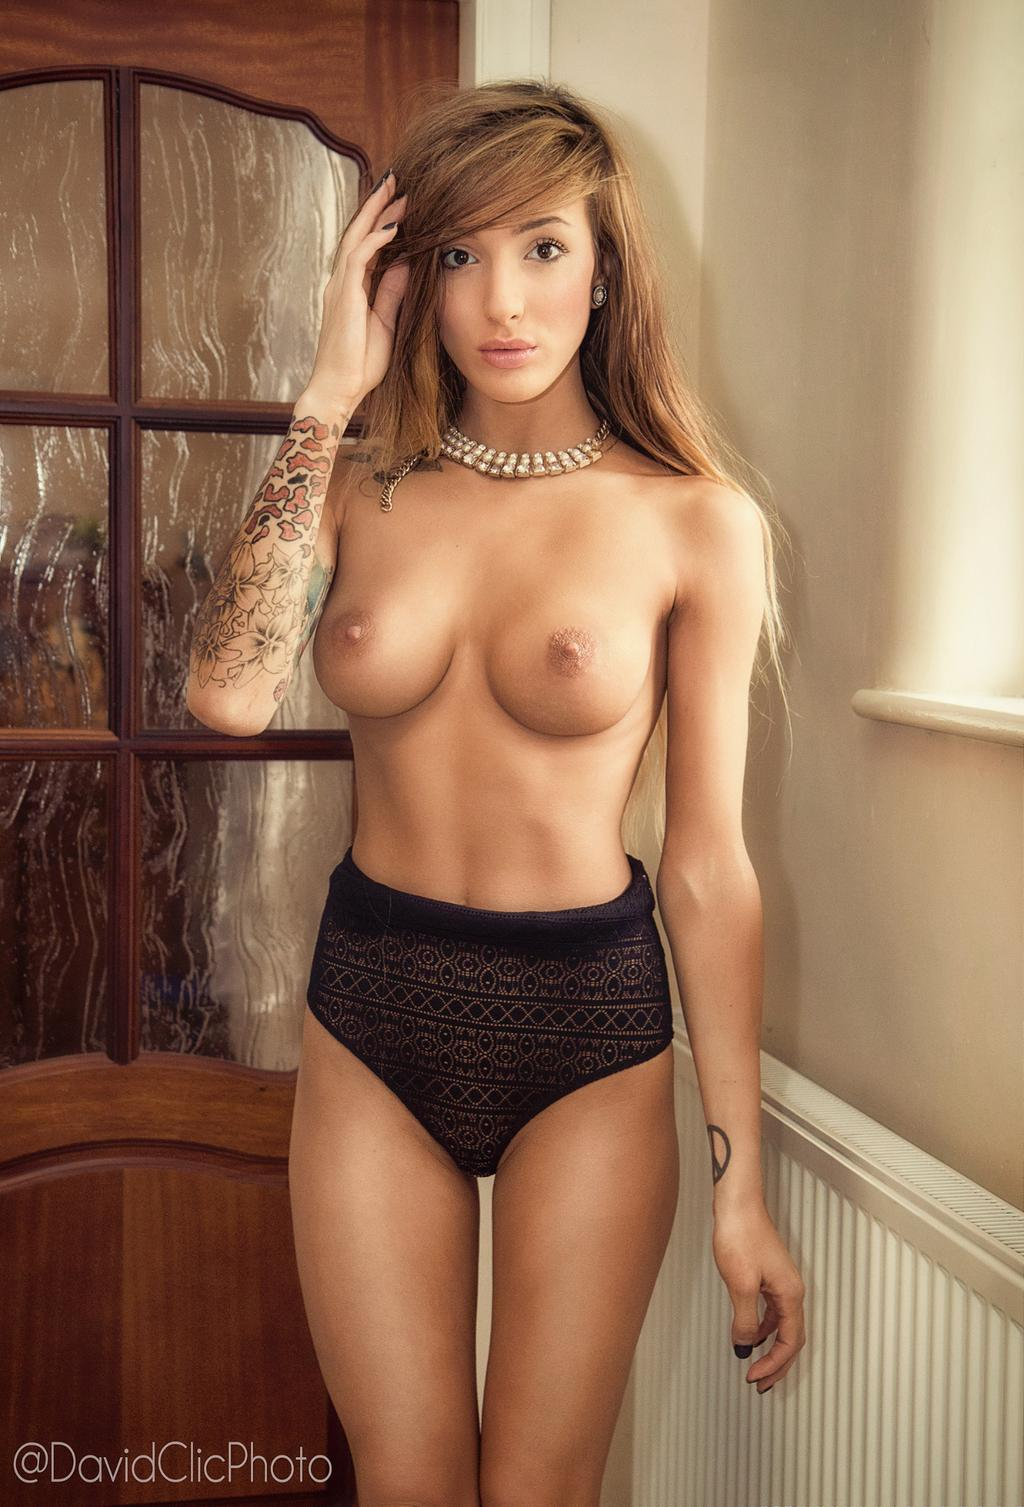 XXX Andrea Cemone naked (36 photos), Sexy, Sideboobs, Feet, bra 2018